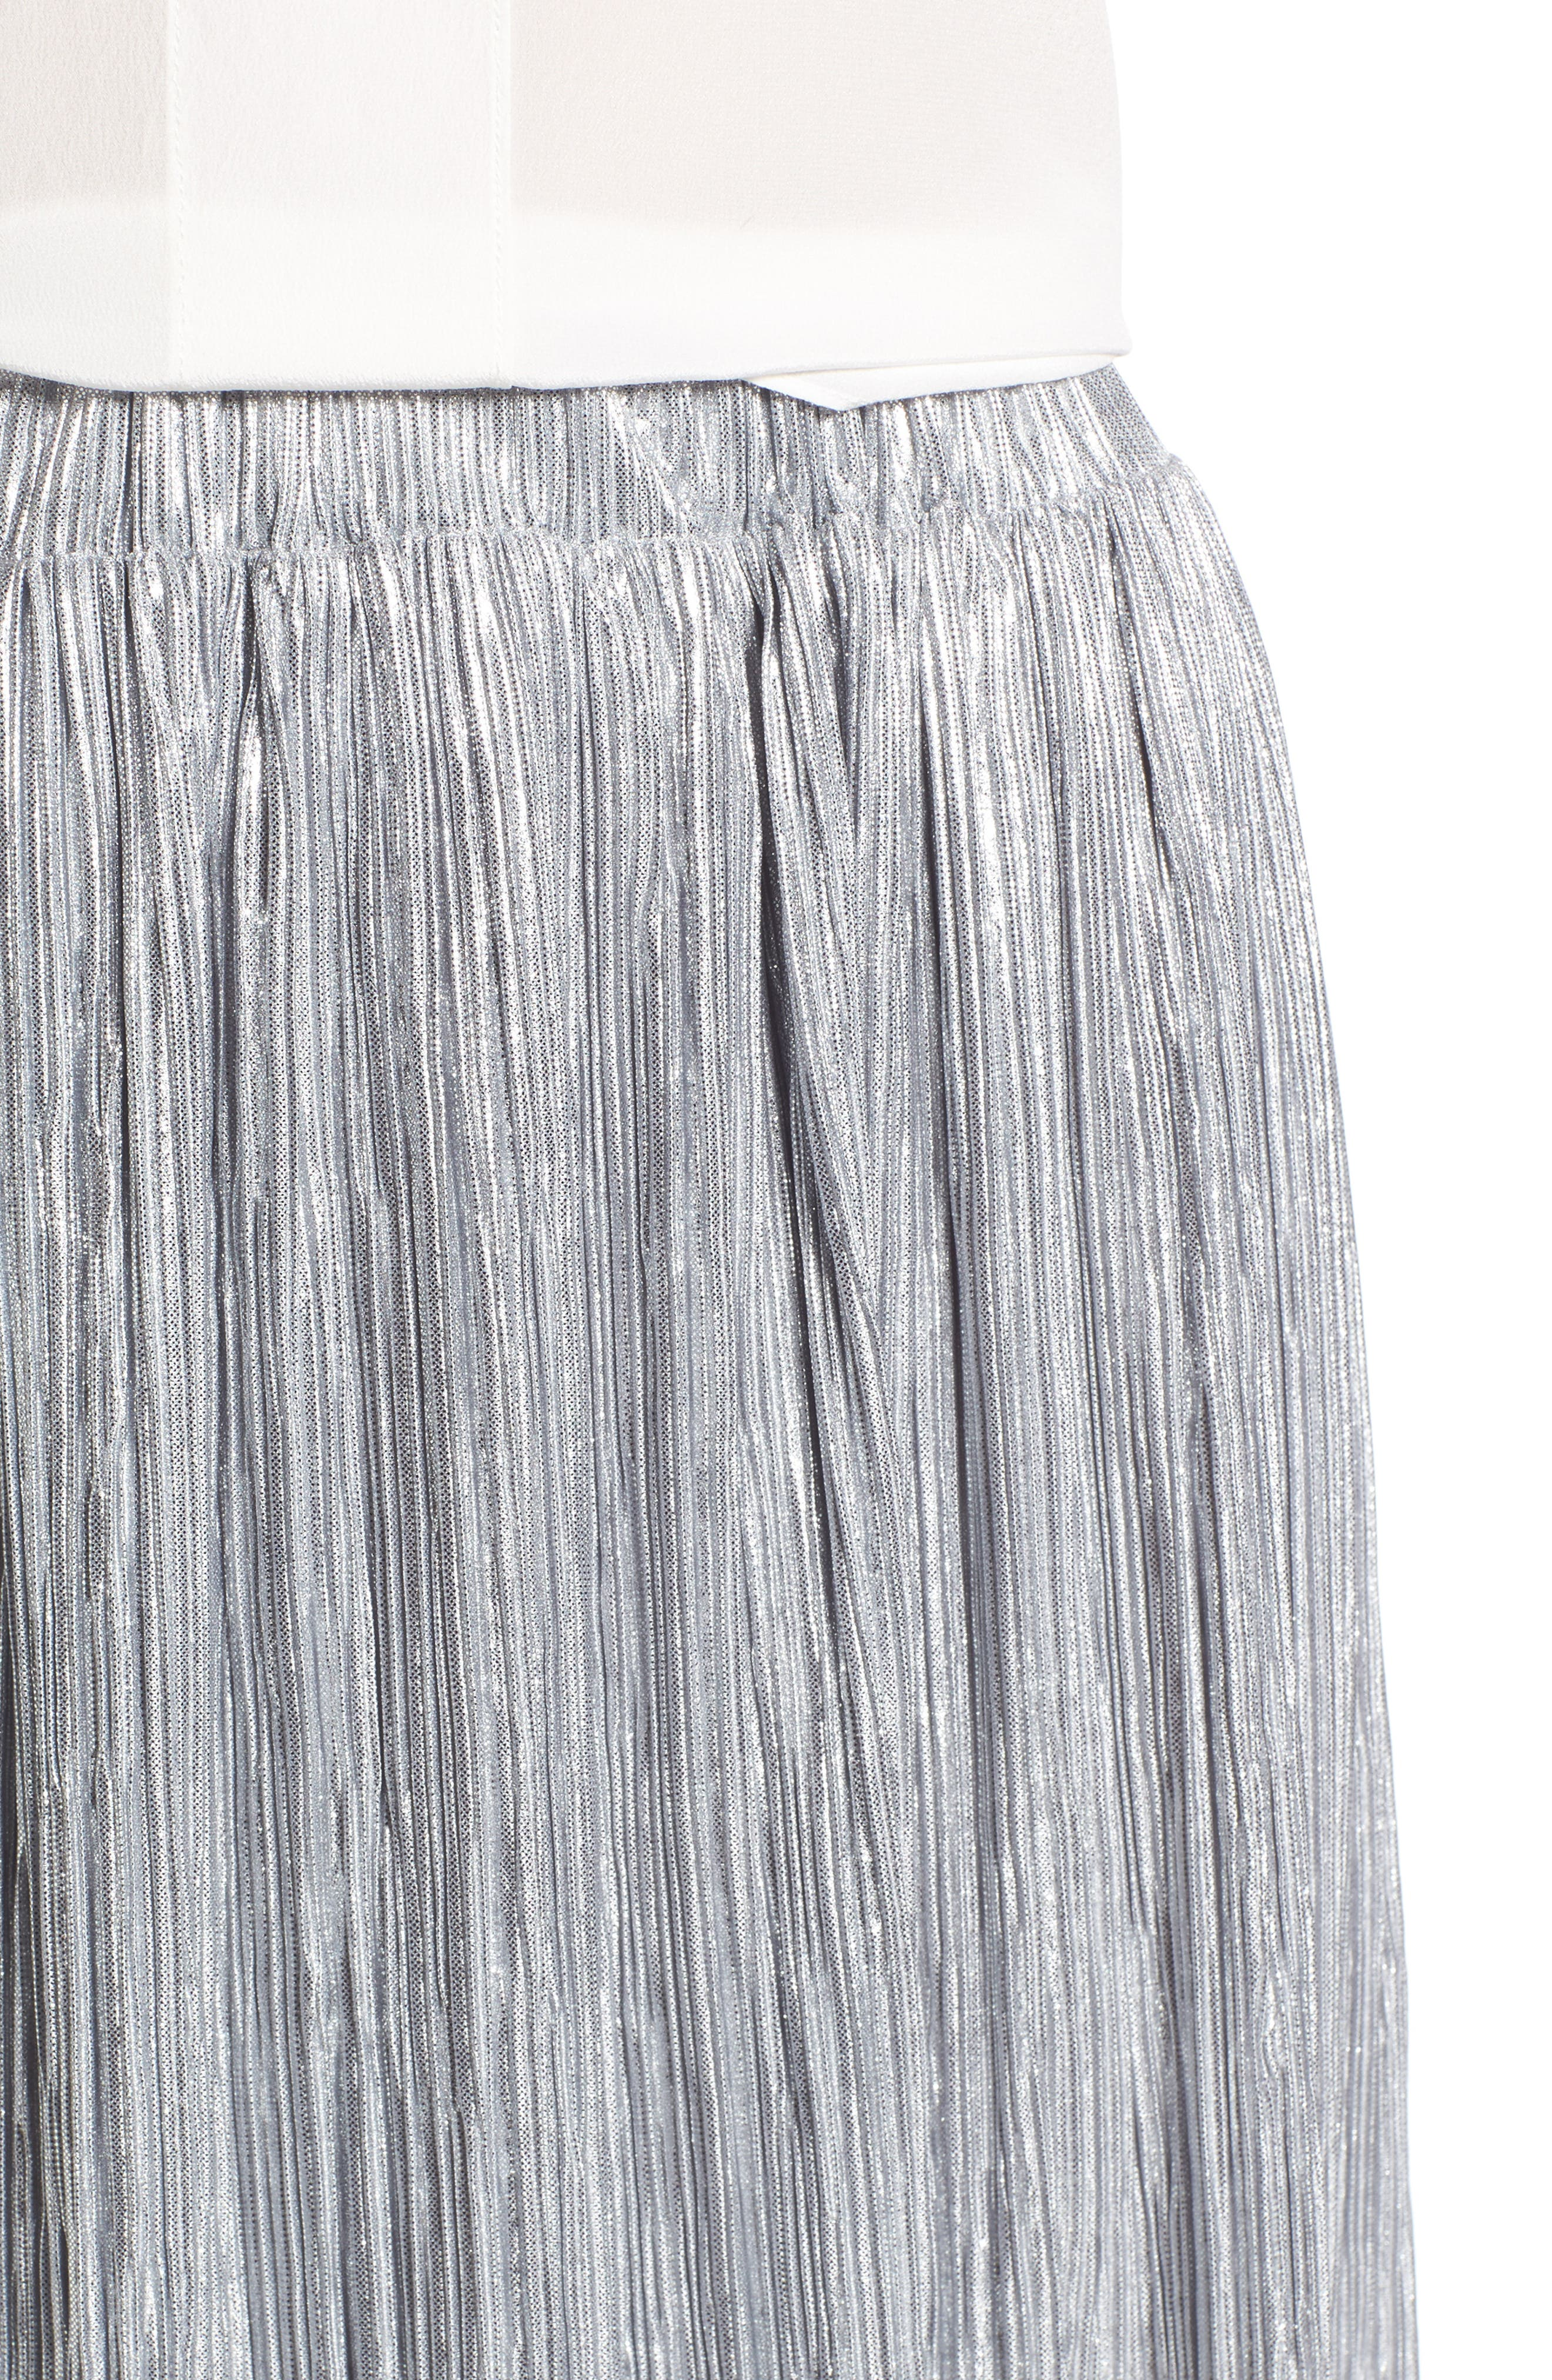 Alternate Image 4  - Vince Camuto Pleat Foiled Knit Skirt